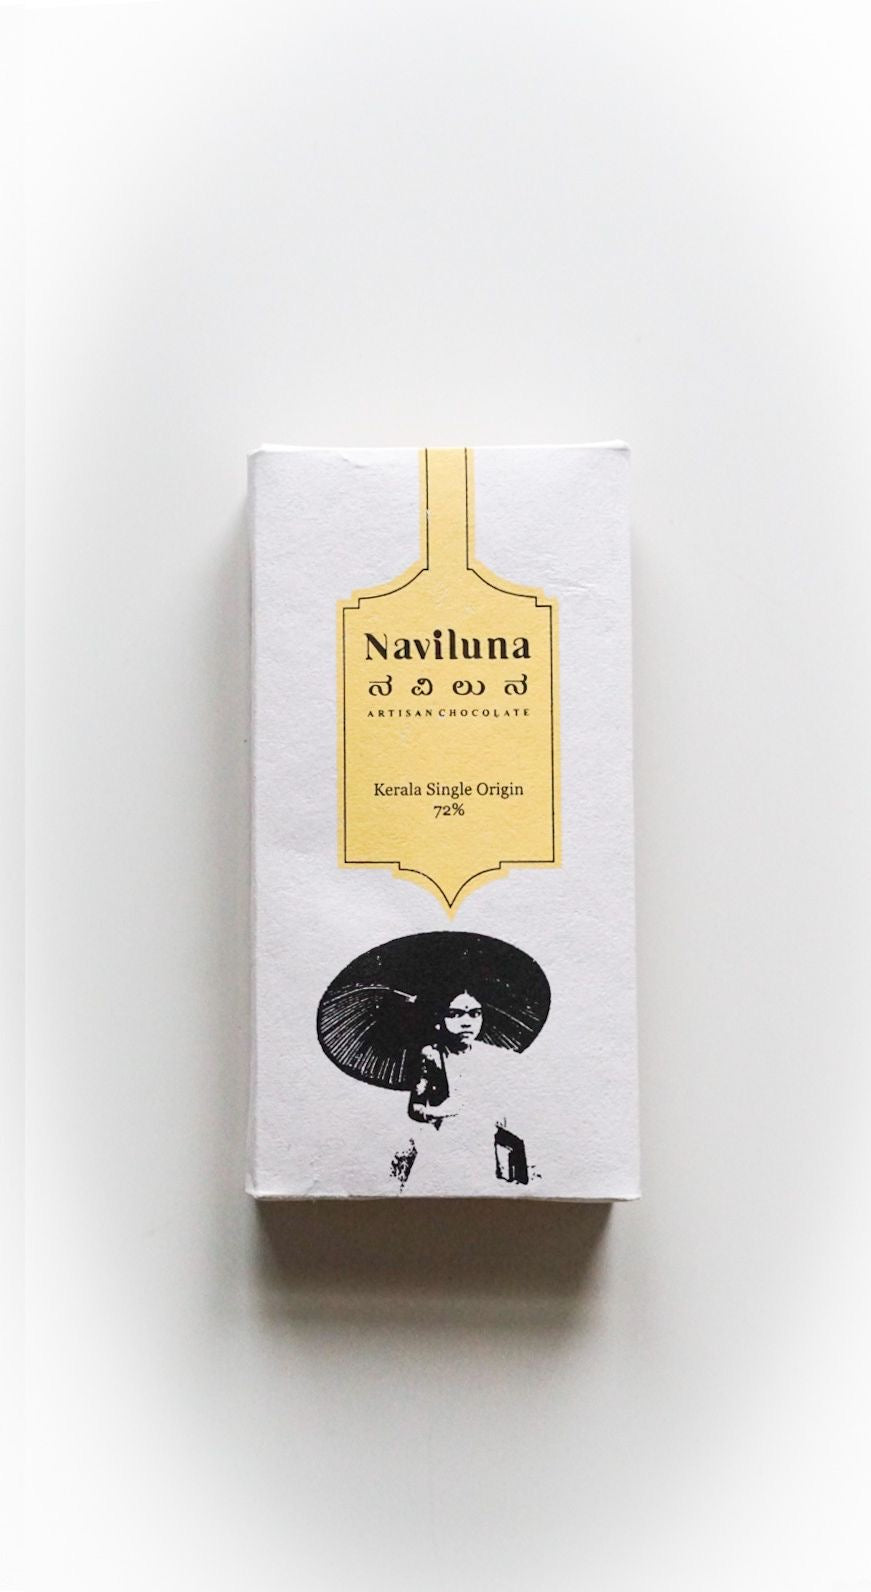 NAVILUNA Classic 72% Kerala Single Origin Chocolate Bar